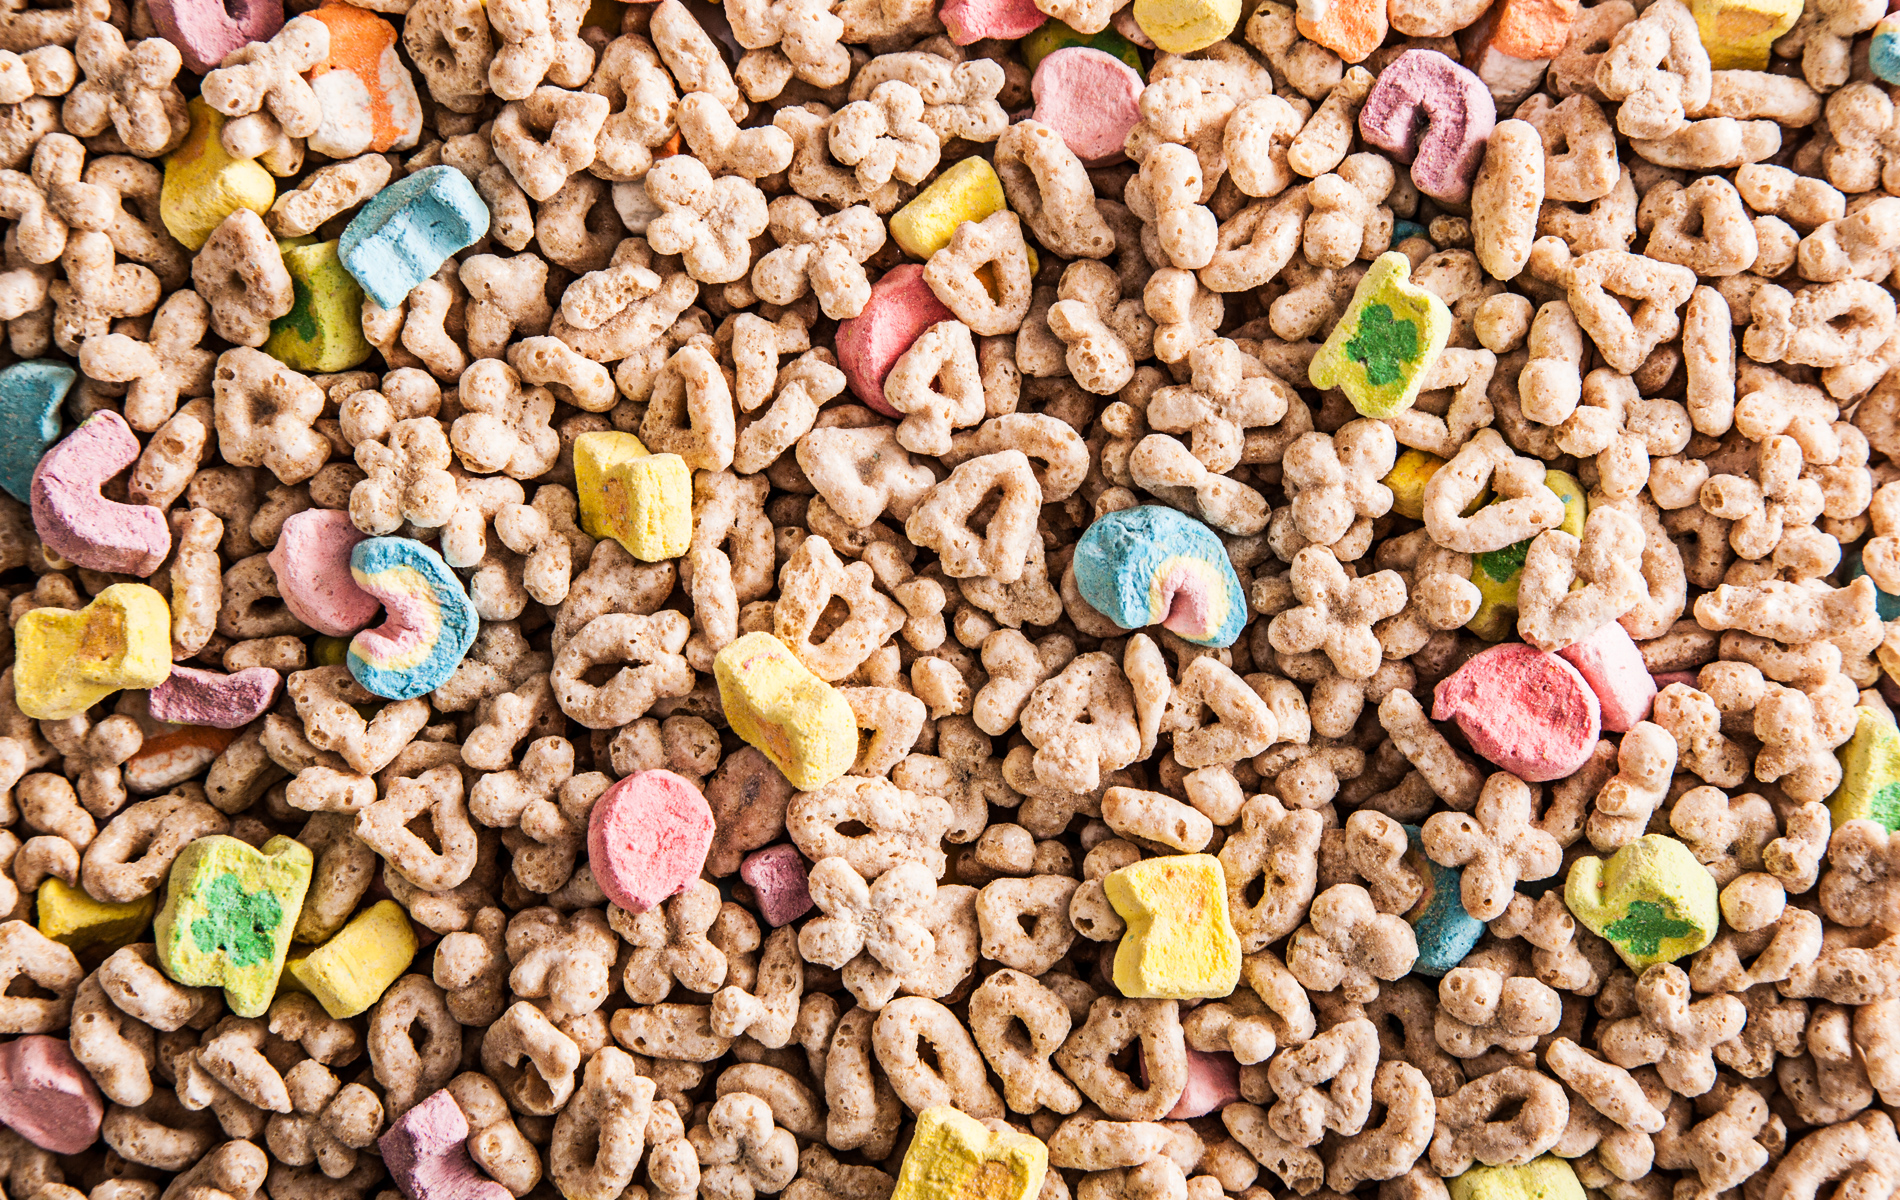 Breakfast Cereal as Art   LUCKY CHARMS   CHOWcom 1900x1200